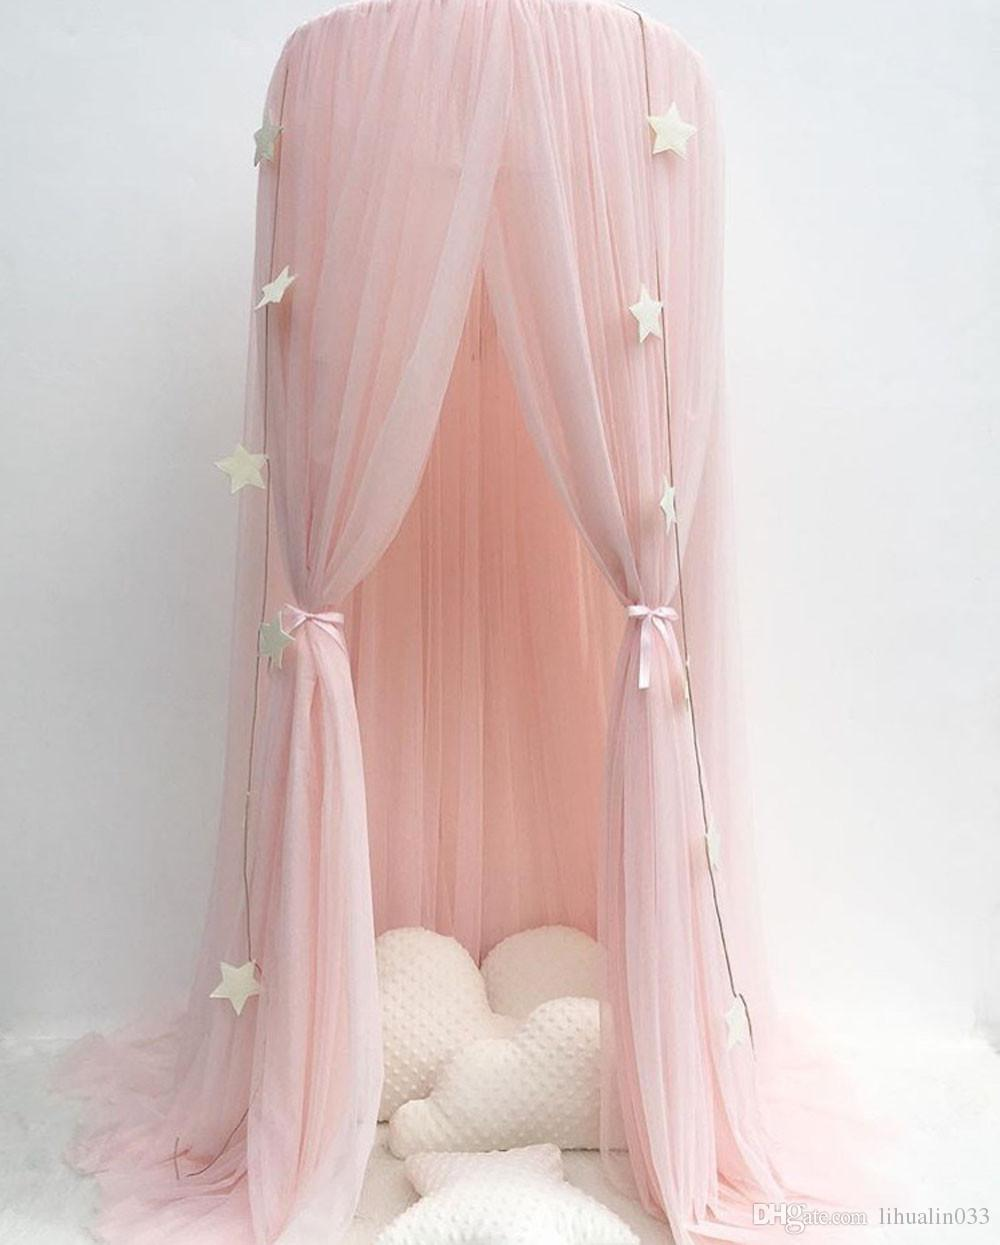 Baby Bed Curtain Round Moustiquaire Crib Tent Hung Dome Mosquito Net Photography Props Curtain for Bedding Klamboe